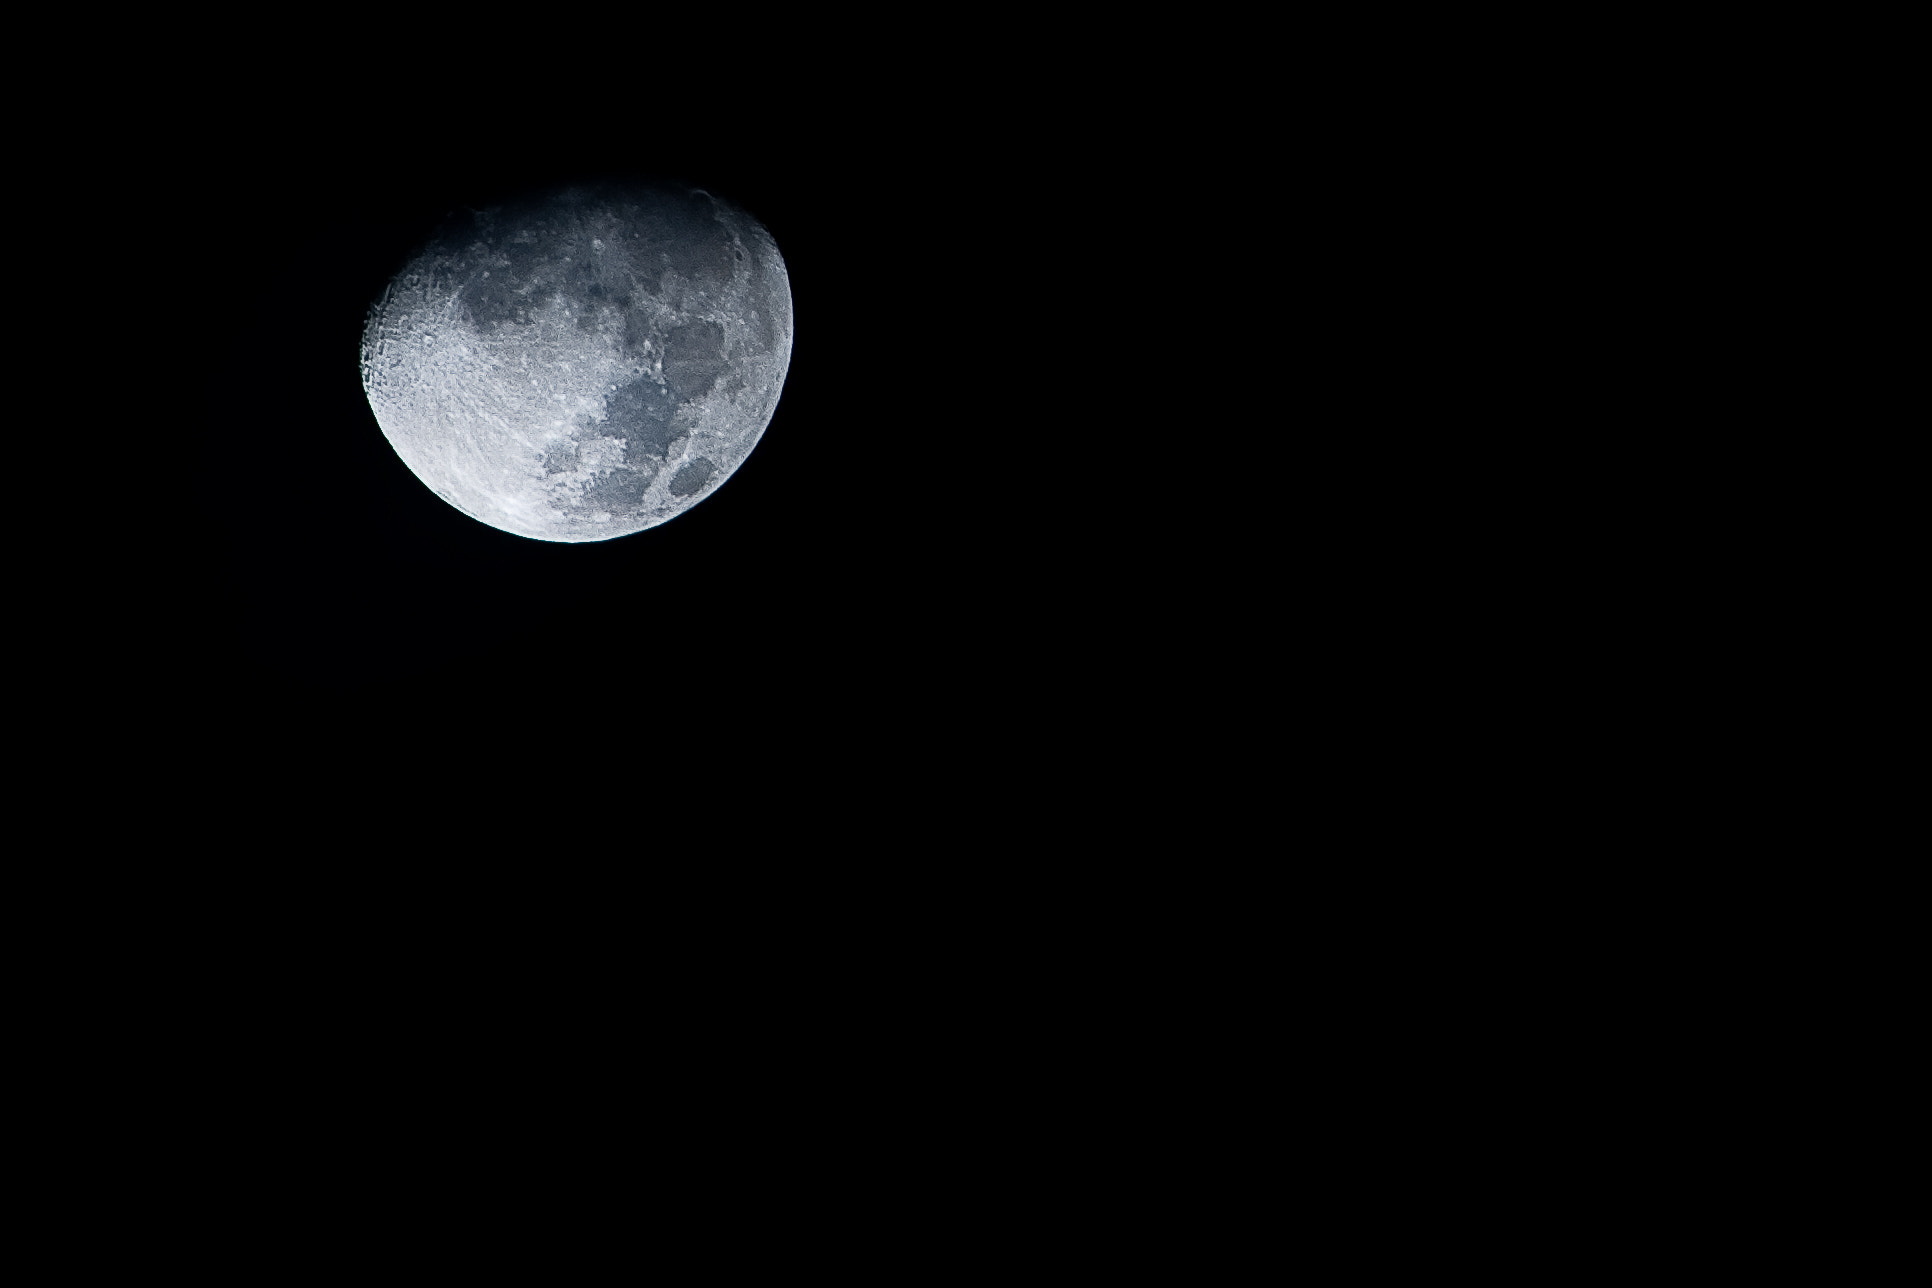 Photograph moon by Wellington Ovalle on 500px